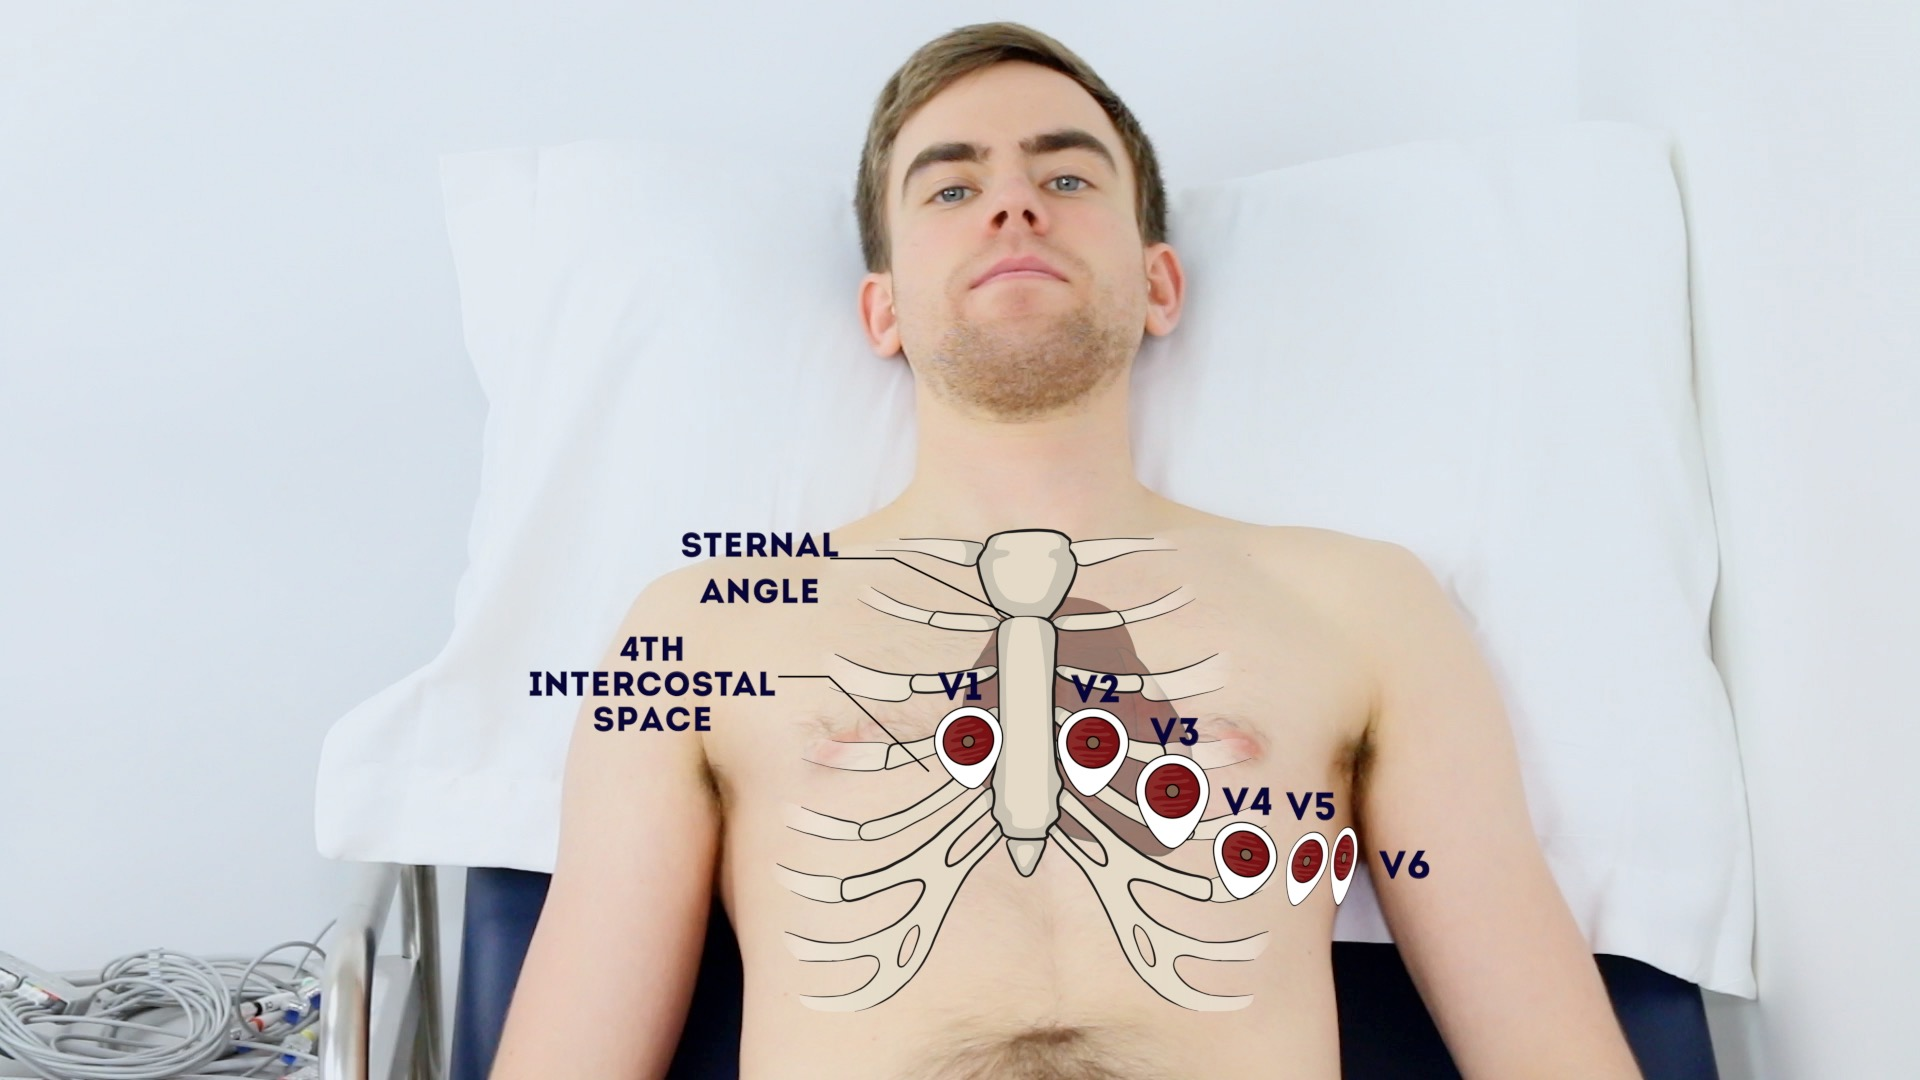 How To Record An Ecg